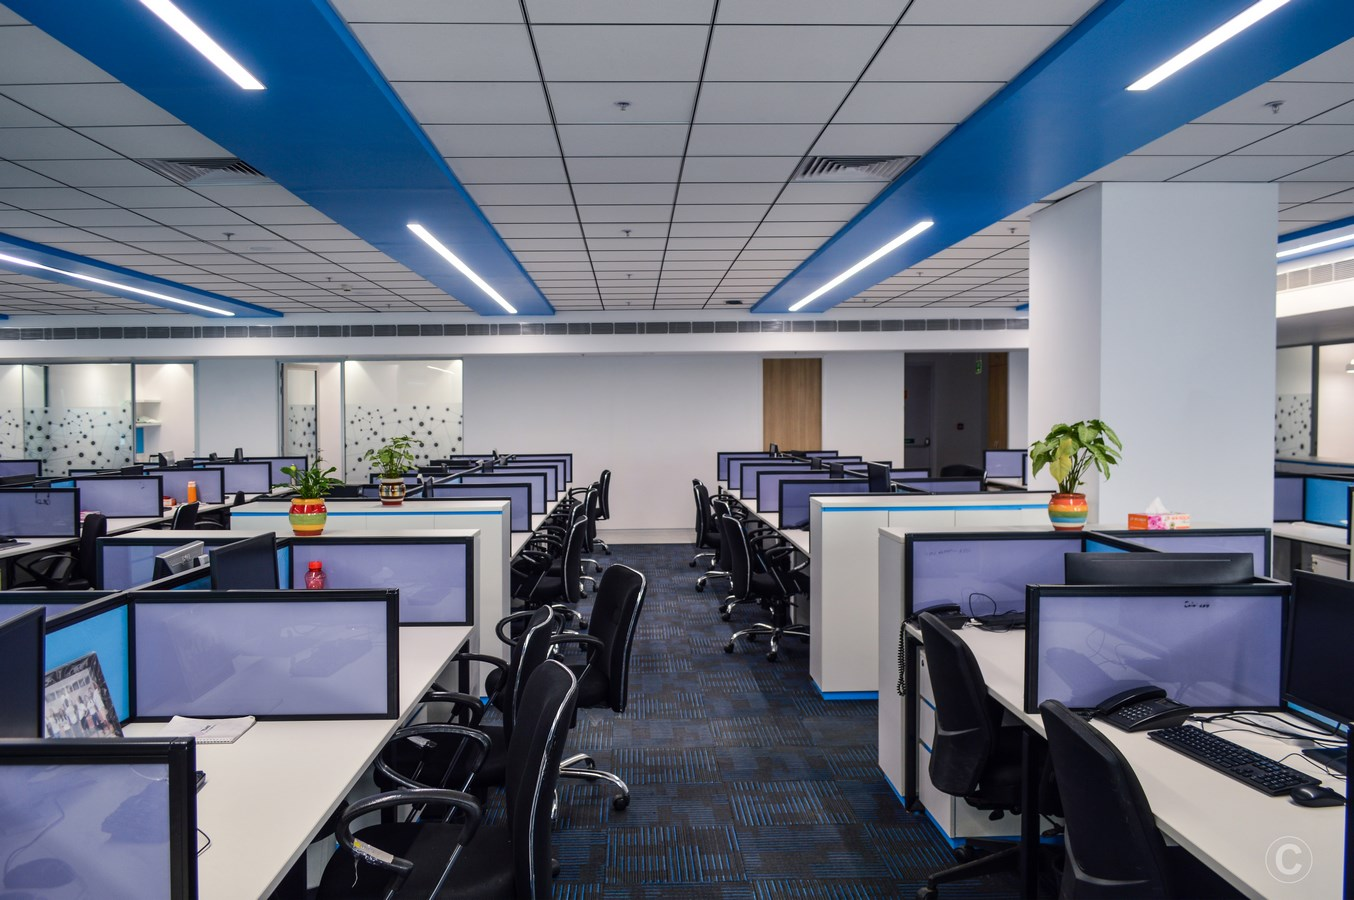 Tejas Networks Corporate Office Interiors By Myspace Architects